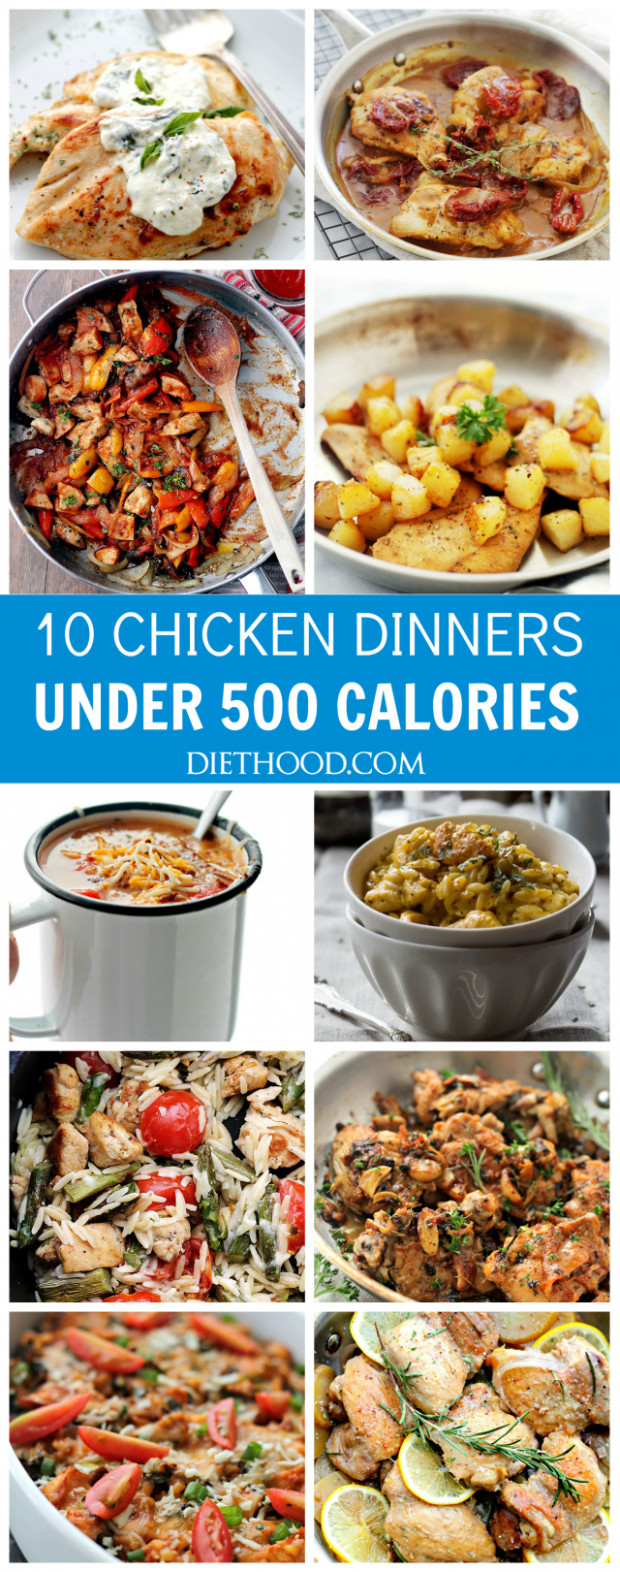 Ten Chicken Dinners Under 12 Calories | Diethood - Recipes Under 500 Calories Vegetarian